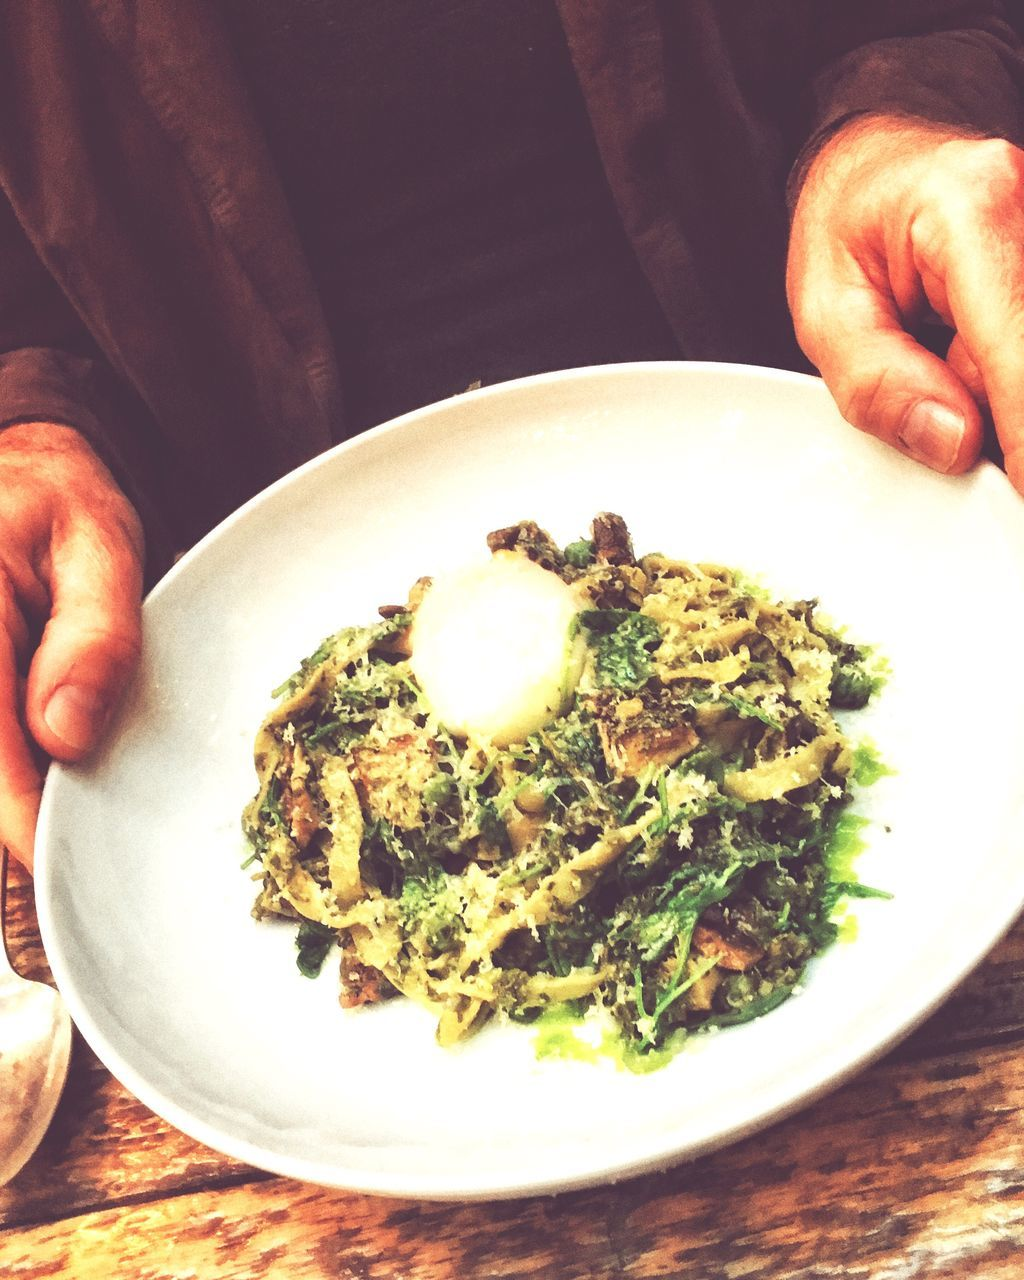 food and drink, food, plate, freshness, table, one person, indoors, human hand, ready-to-eat, healthy eating, breakfast, holding, close-up, human body part, italian food, gourmet, real people, one man only, day, people